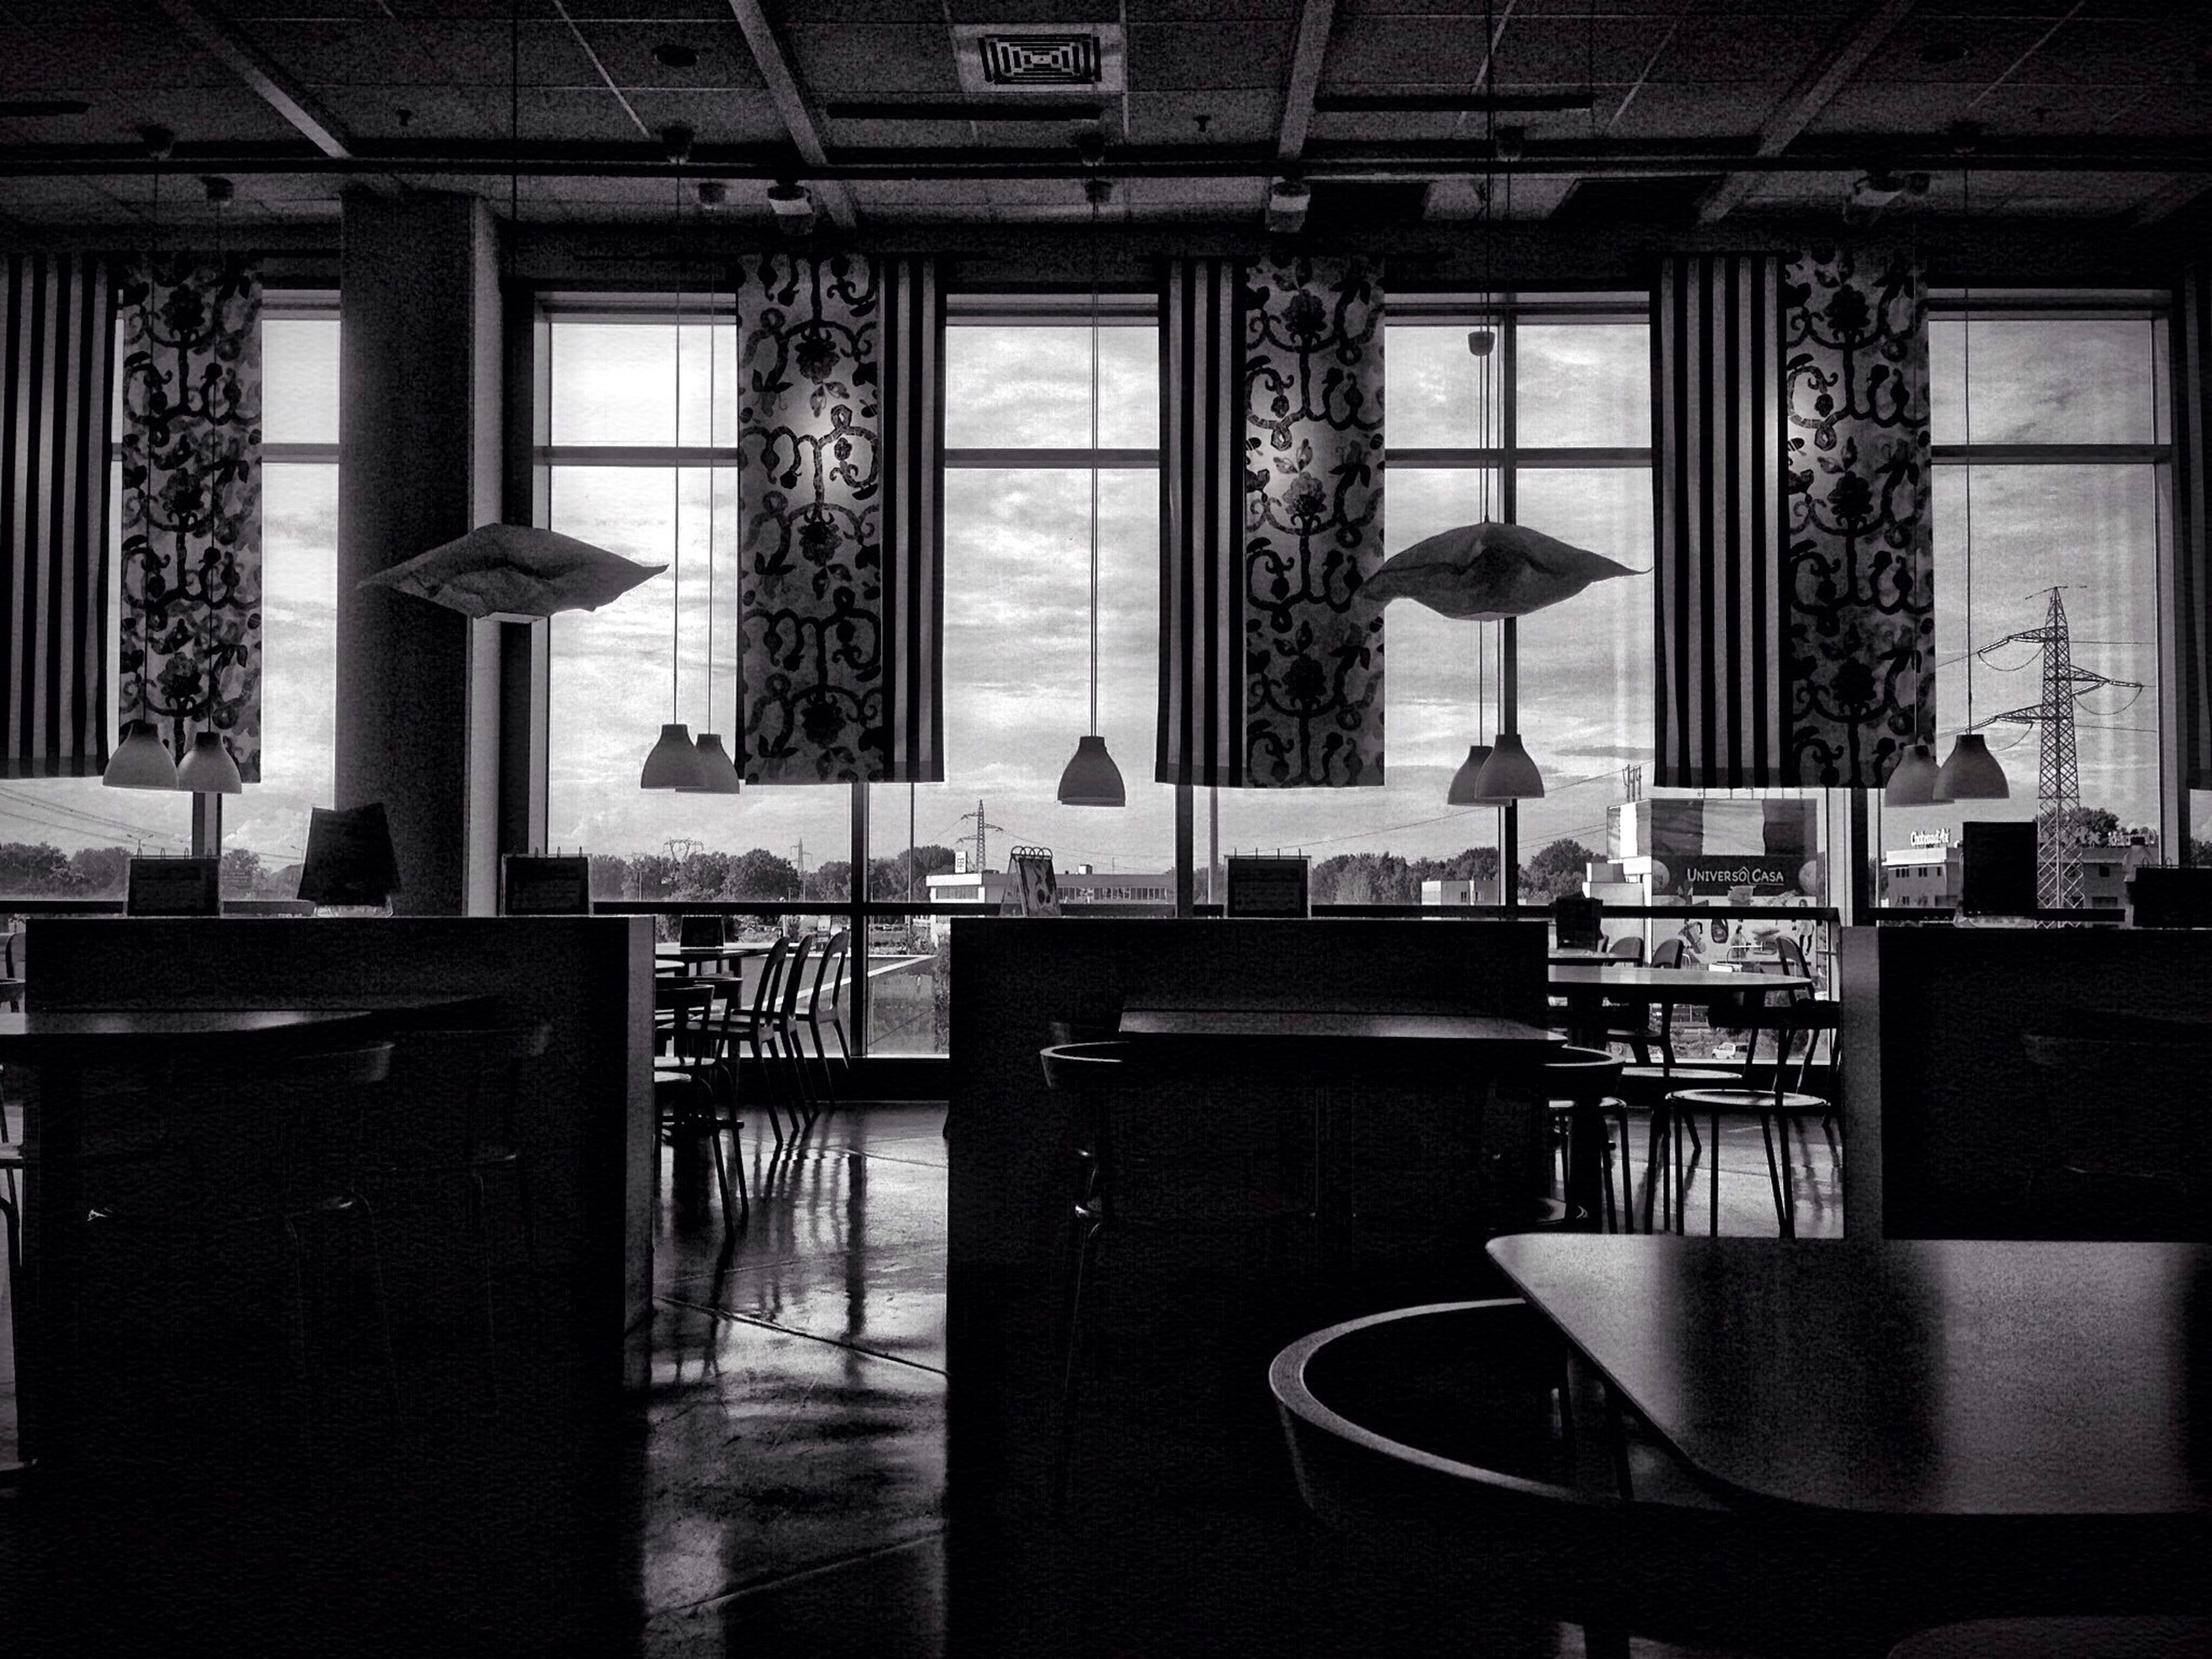 indoors, chair, table, absence, empty, window, home interior, architecture, old-fashioned, interior, no people, furniture, built structure, lighting equipment, retro styled, still life, restaurant, shelf, wood - material, technology